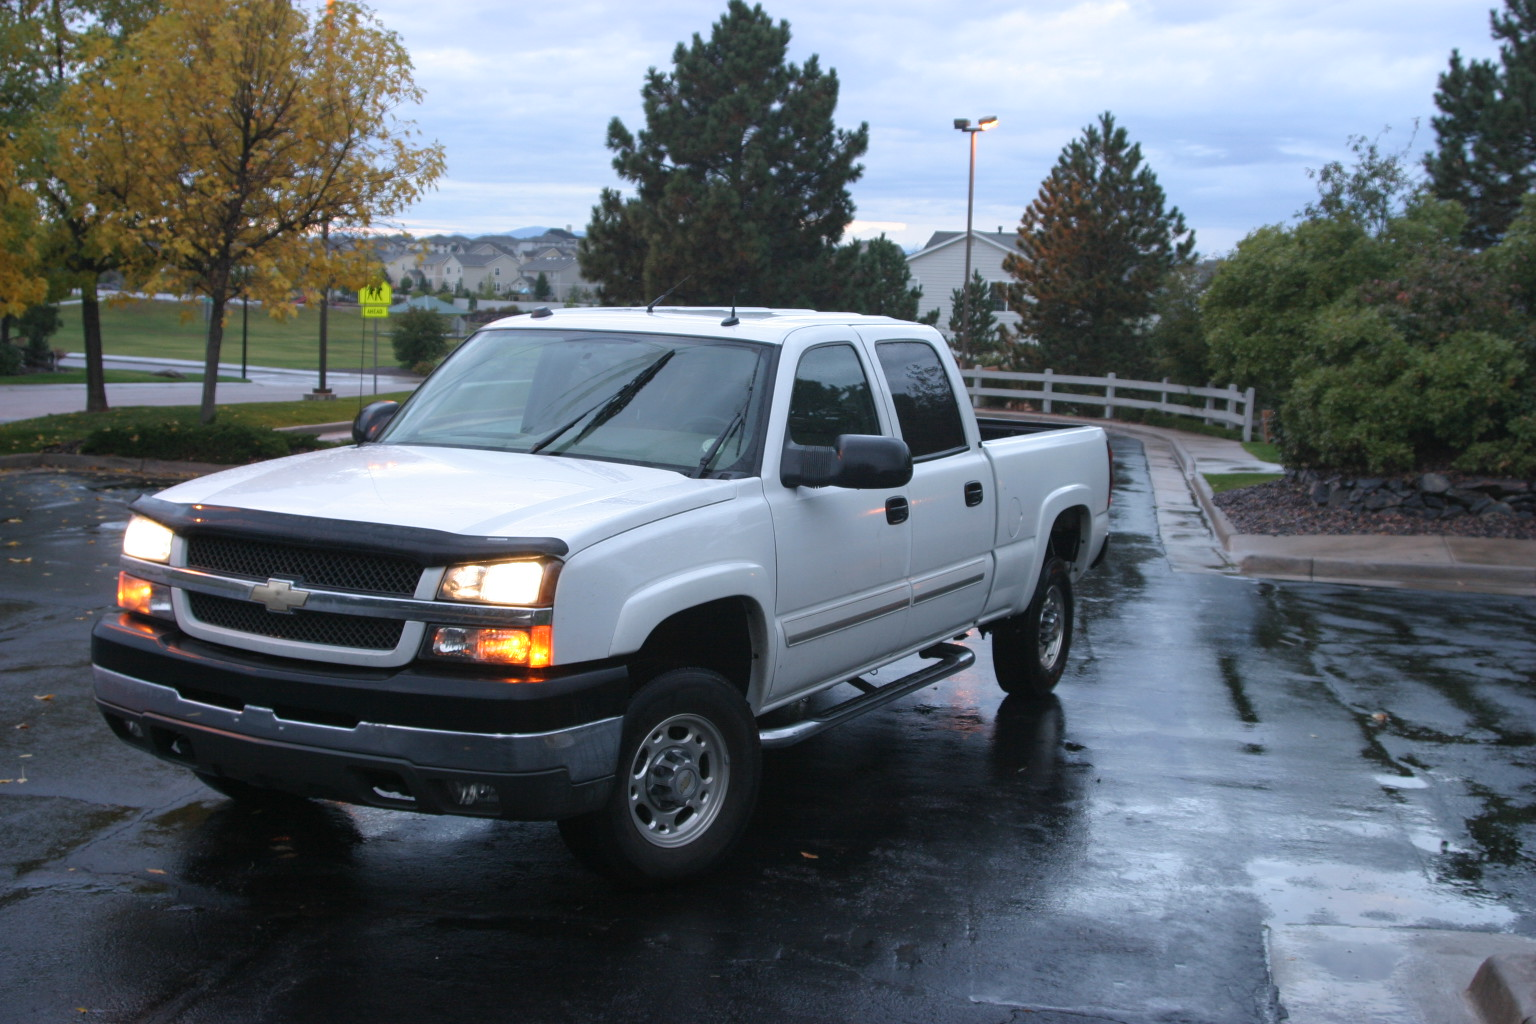 2006 Chevrolet Silverado 1500HD LT2 Crew Cab Short Bed 4WD picture, exterior